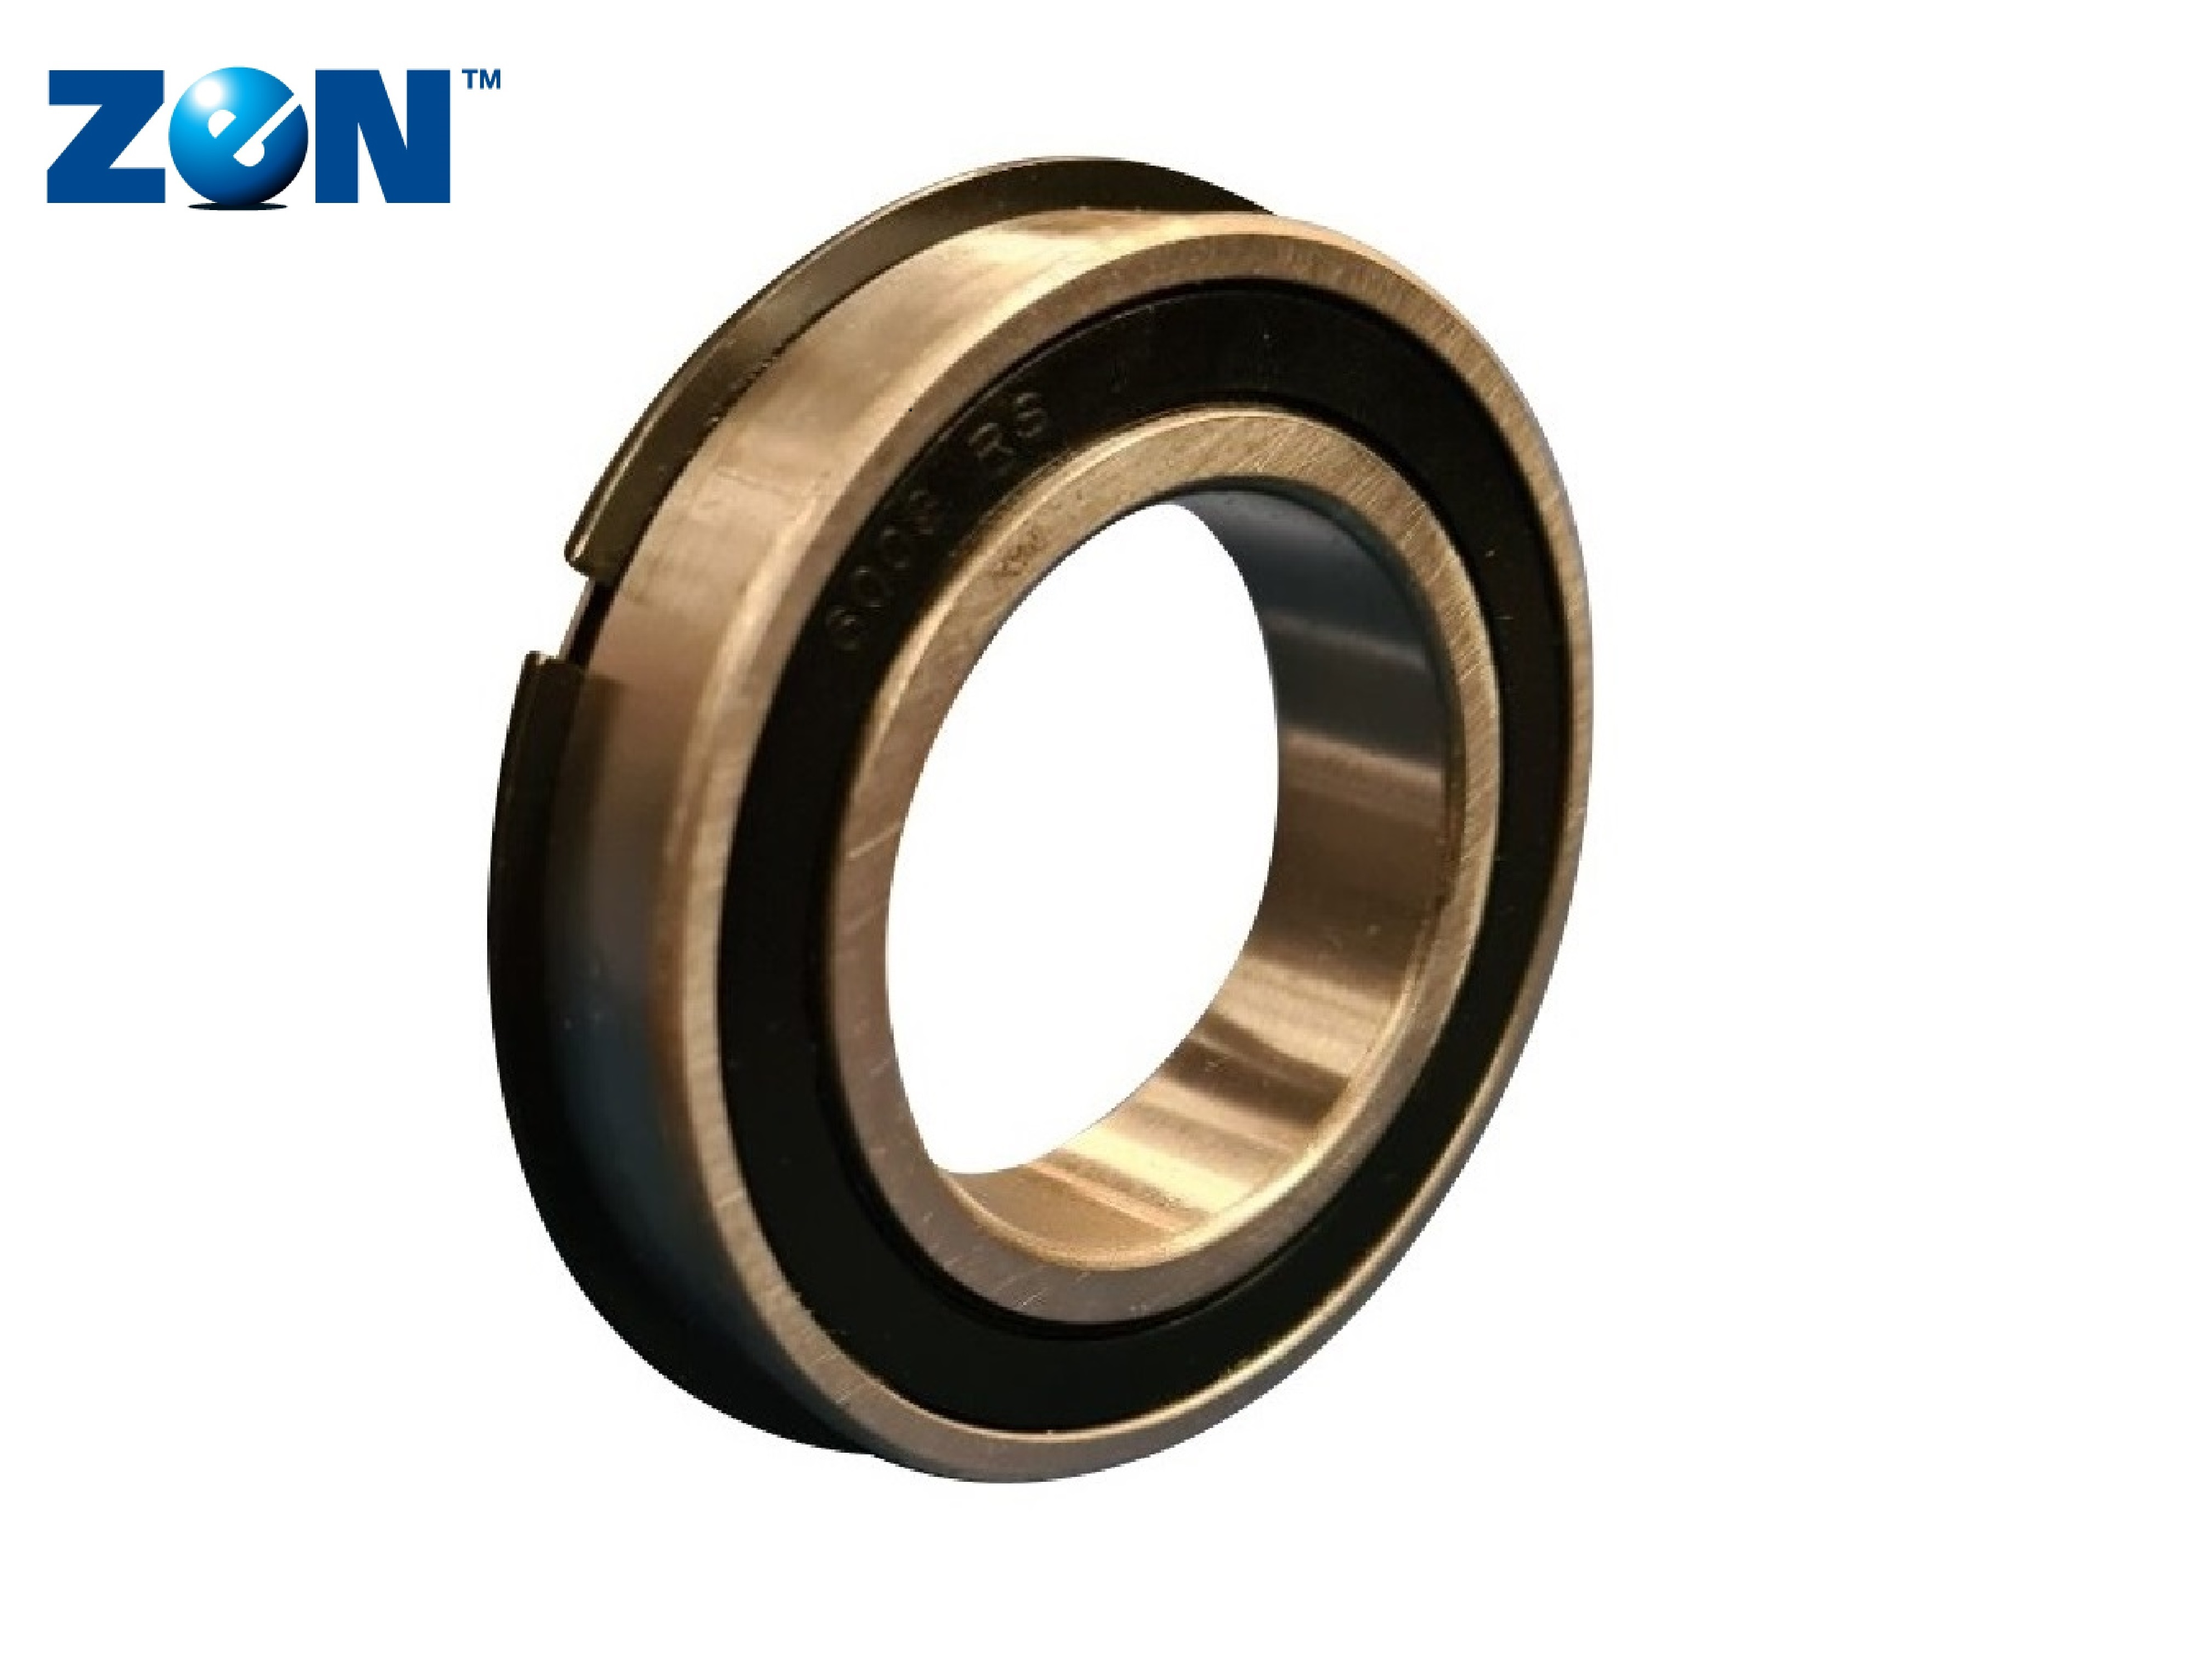 ZEN 6206-2RS-NR Sealed Ball Bearing With Snap Ring 30mm x 62mm x 16mm